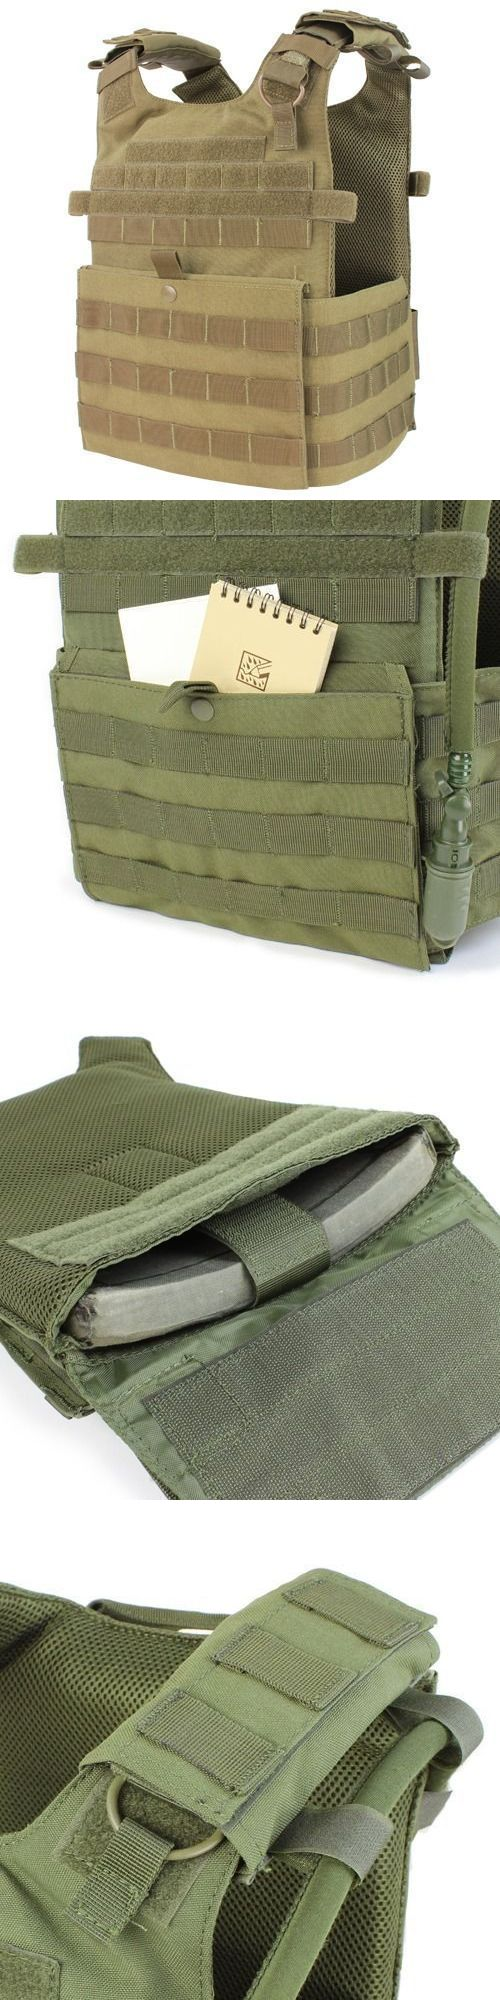 Chest Rigs and Tactical Vests 177891: Condor 201039 Tan Gunner Lightweight Plate Carrier Molle Padded Minimalist Vest -> BUY IT NOW ONLY: $59.99 on eBay!